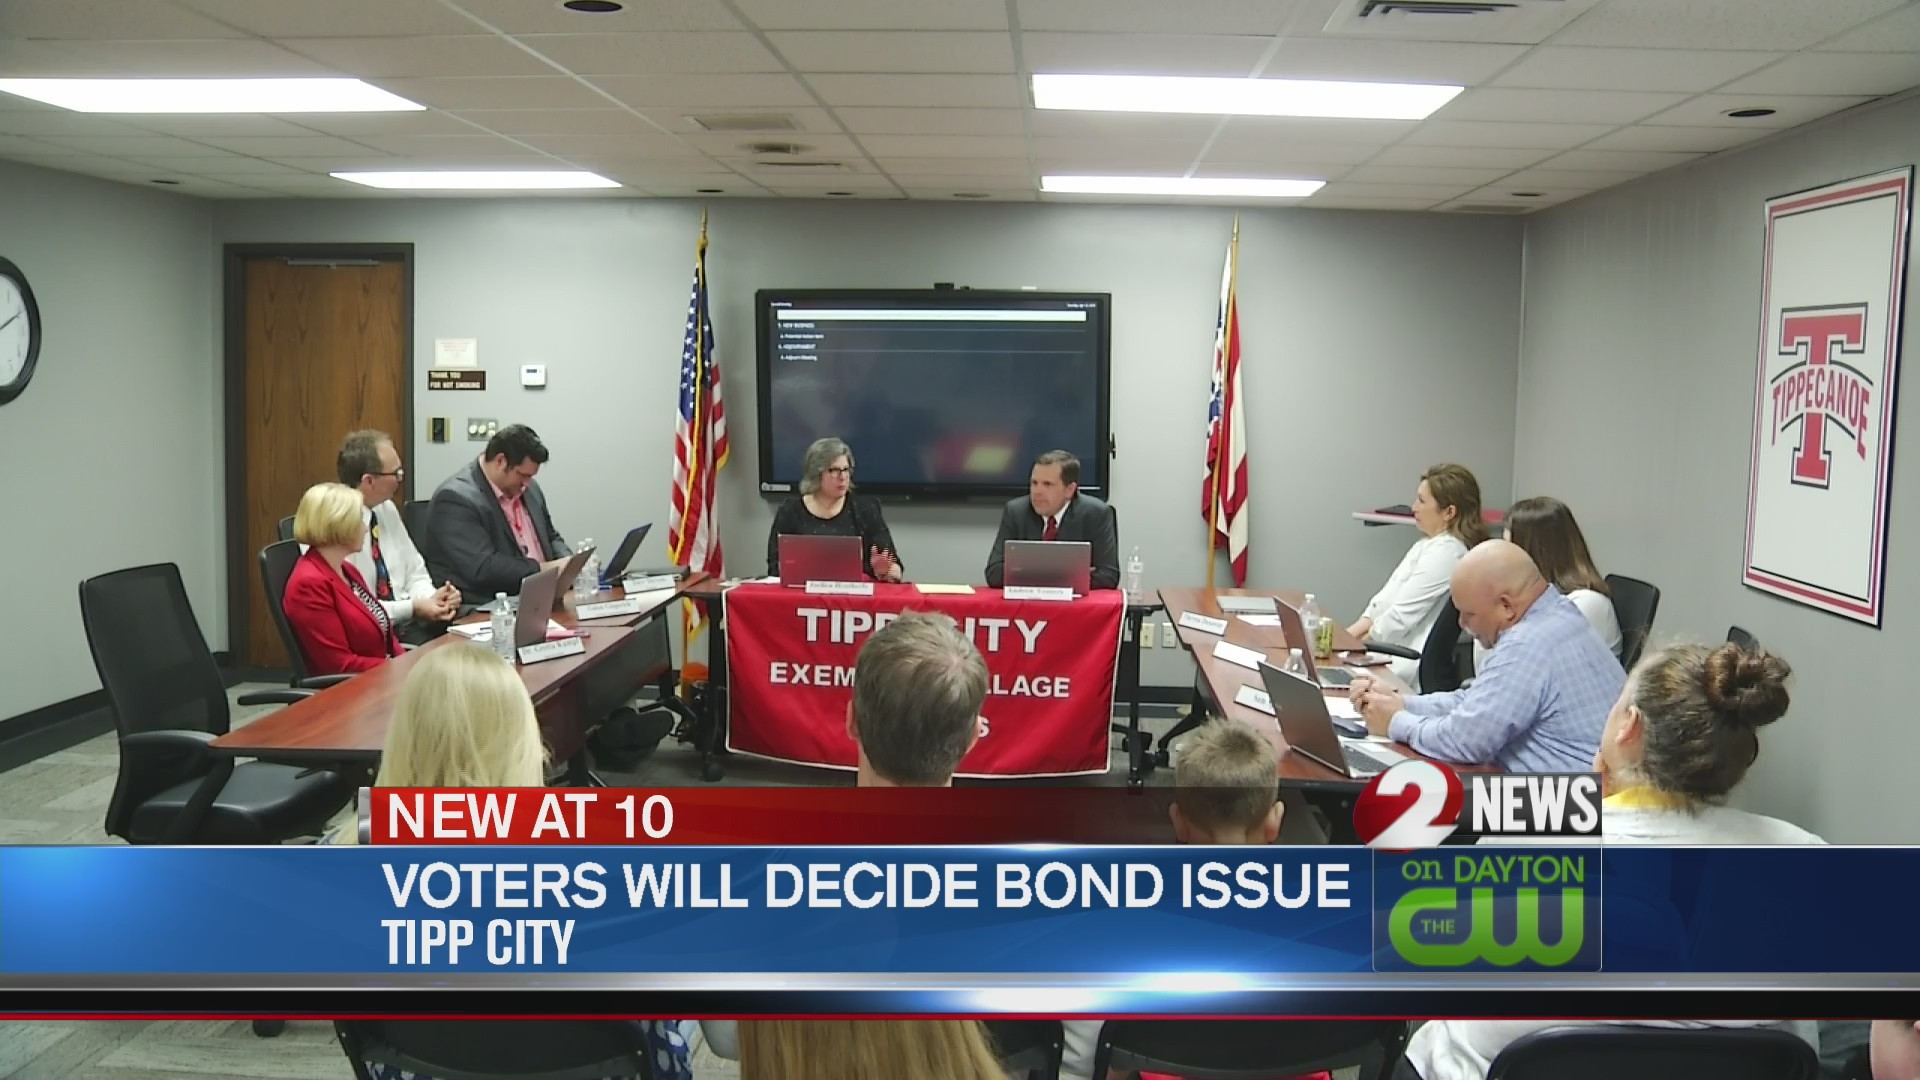 Voters will decide bond issue